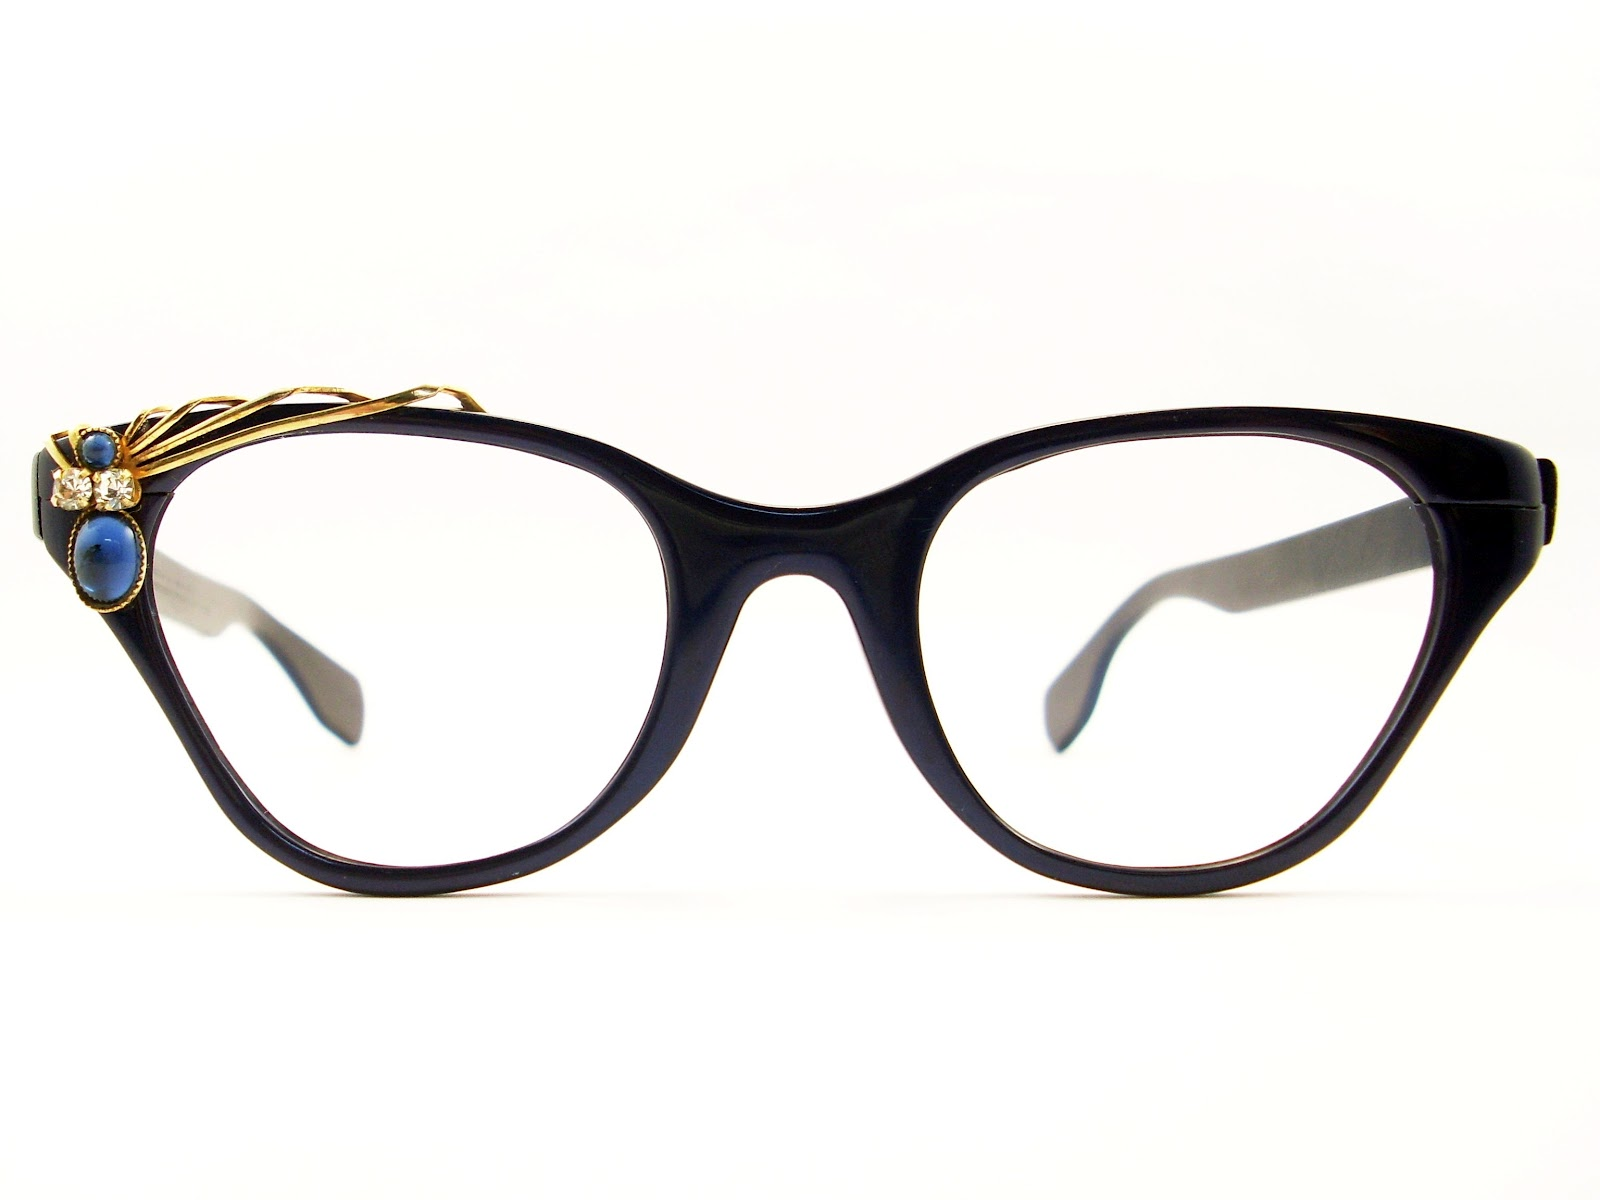 Vintage Eyeglass Frames Cat Eye : Cat eye glasses vintage